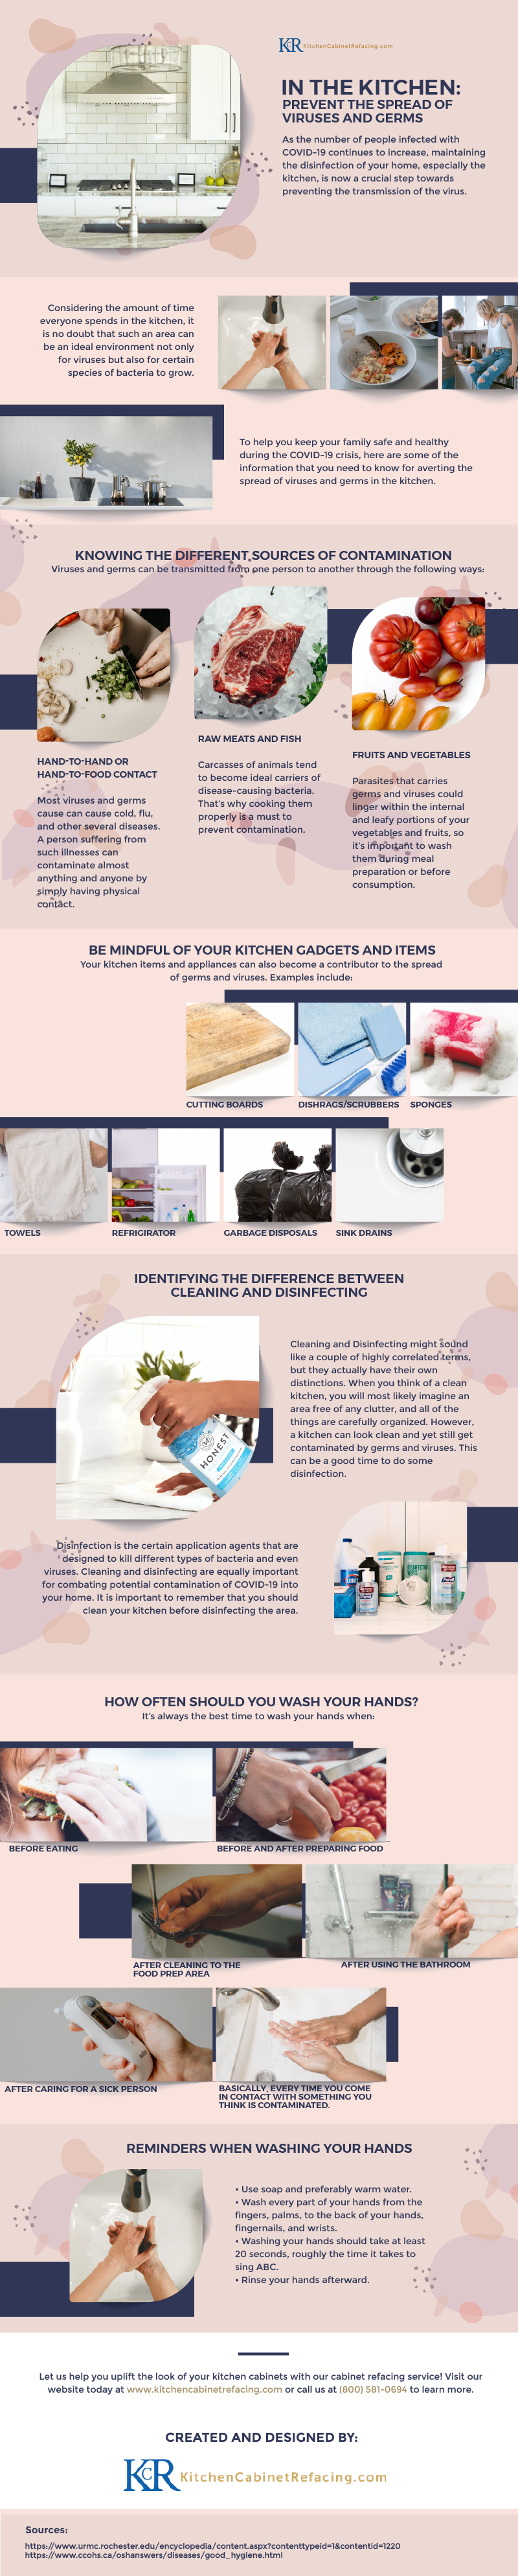 In The Kitchen: Prevent The Spread Of Viruses And Germs - Infographic